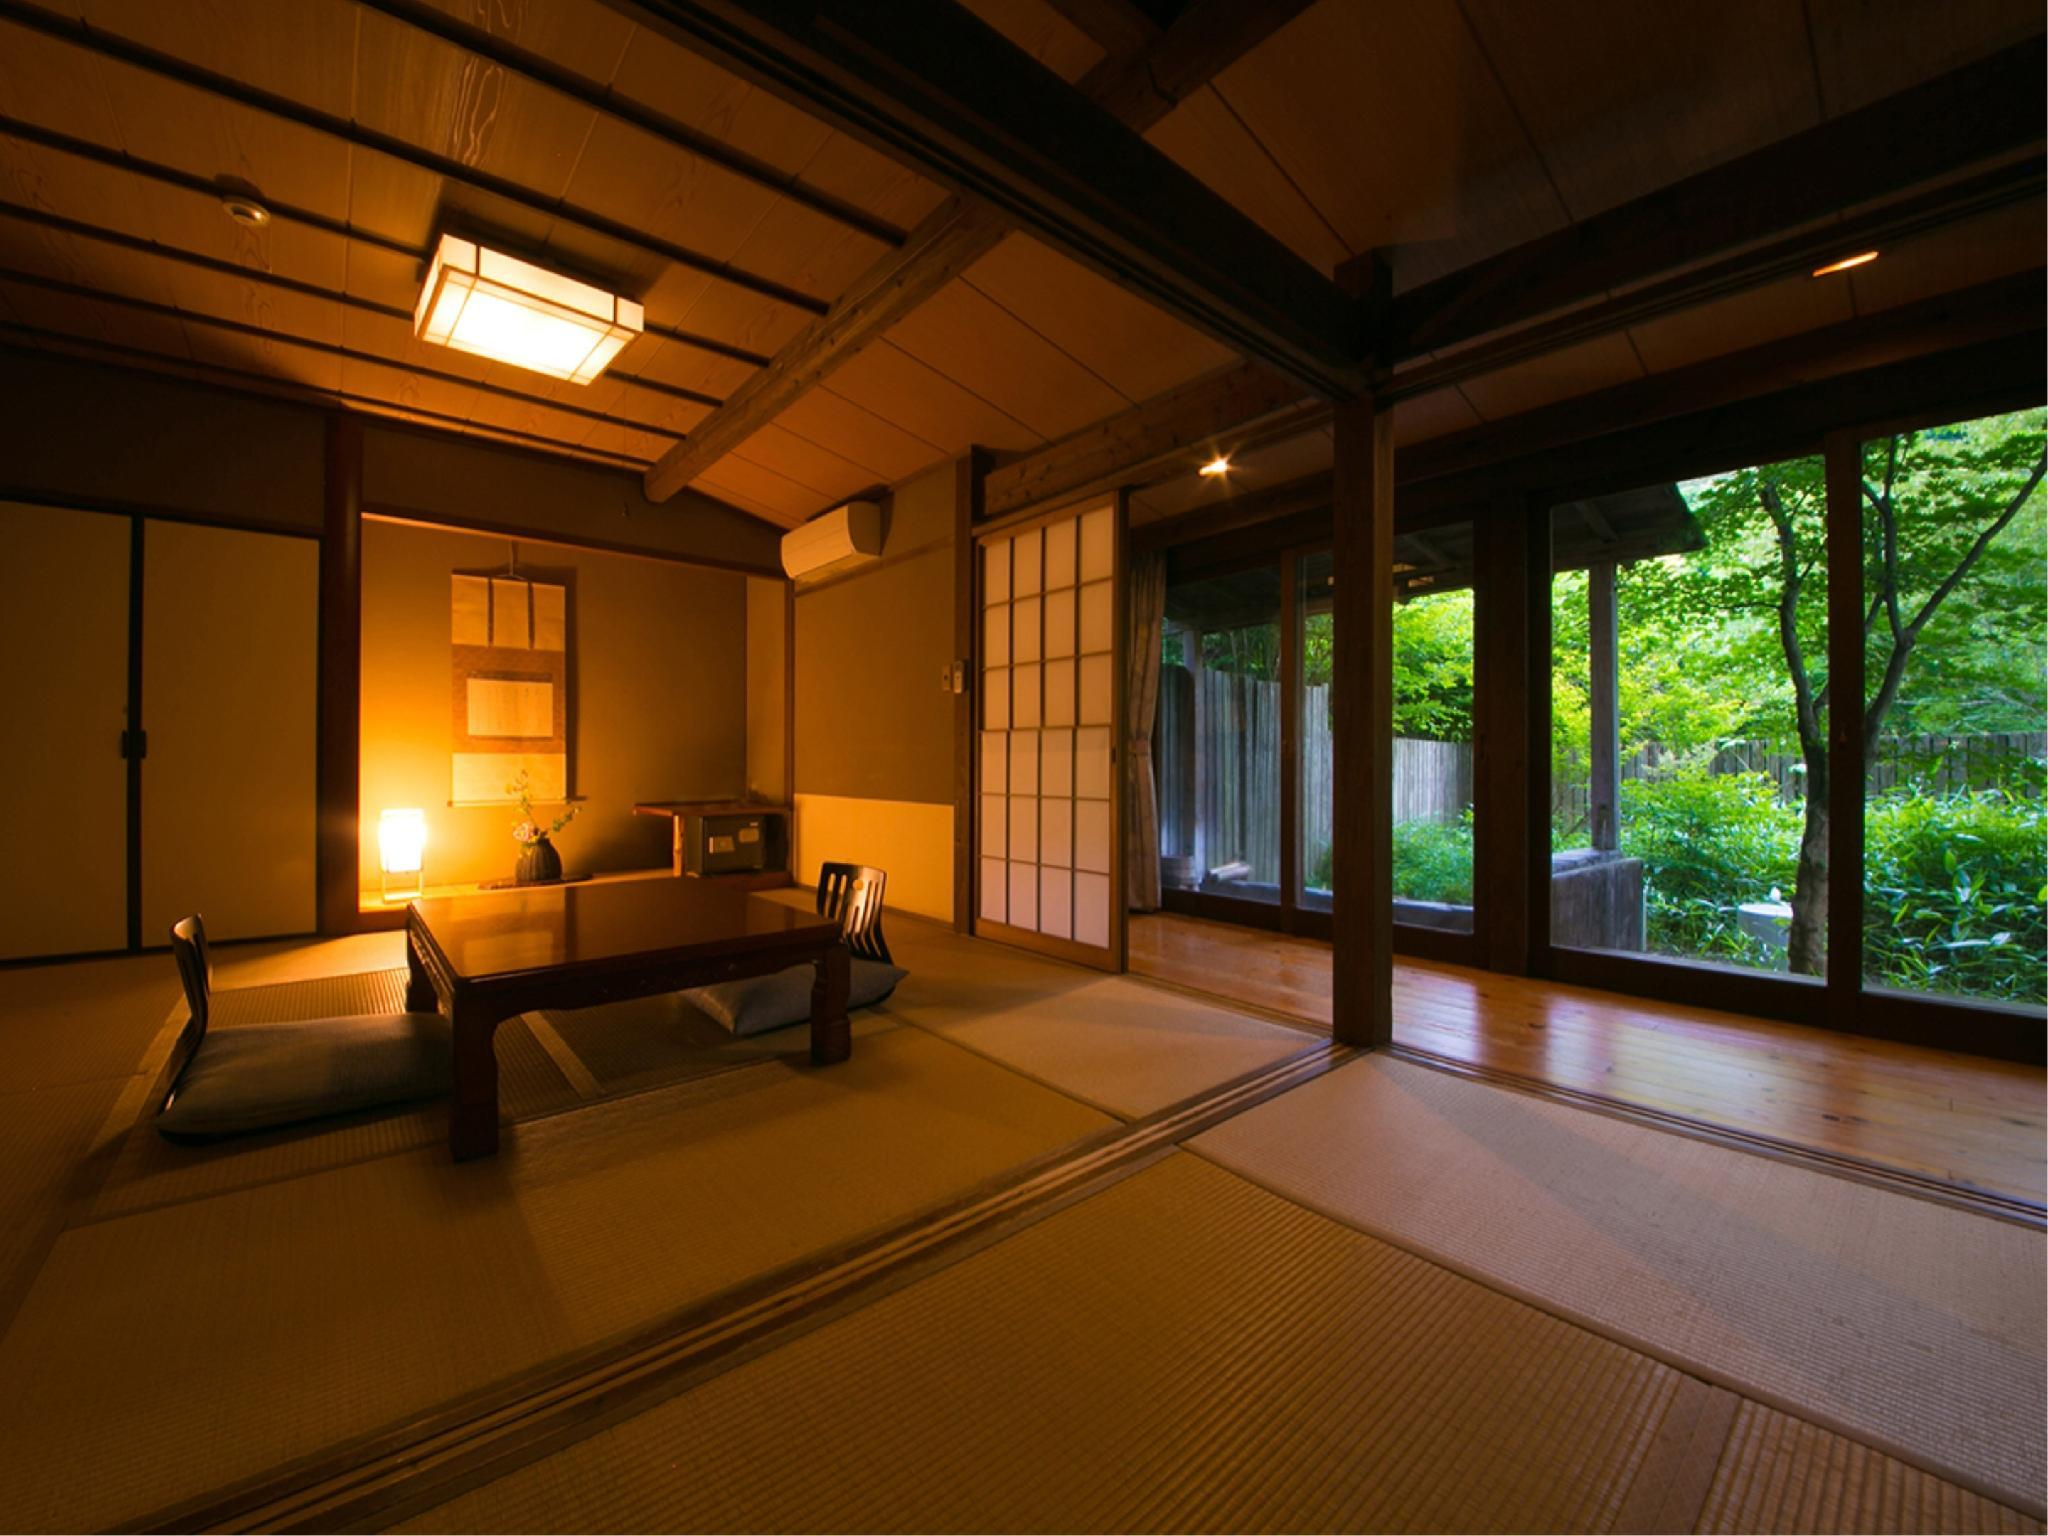 Detached Japanese-style Room with Open-air Bath (Type A, Main Building)